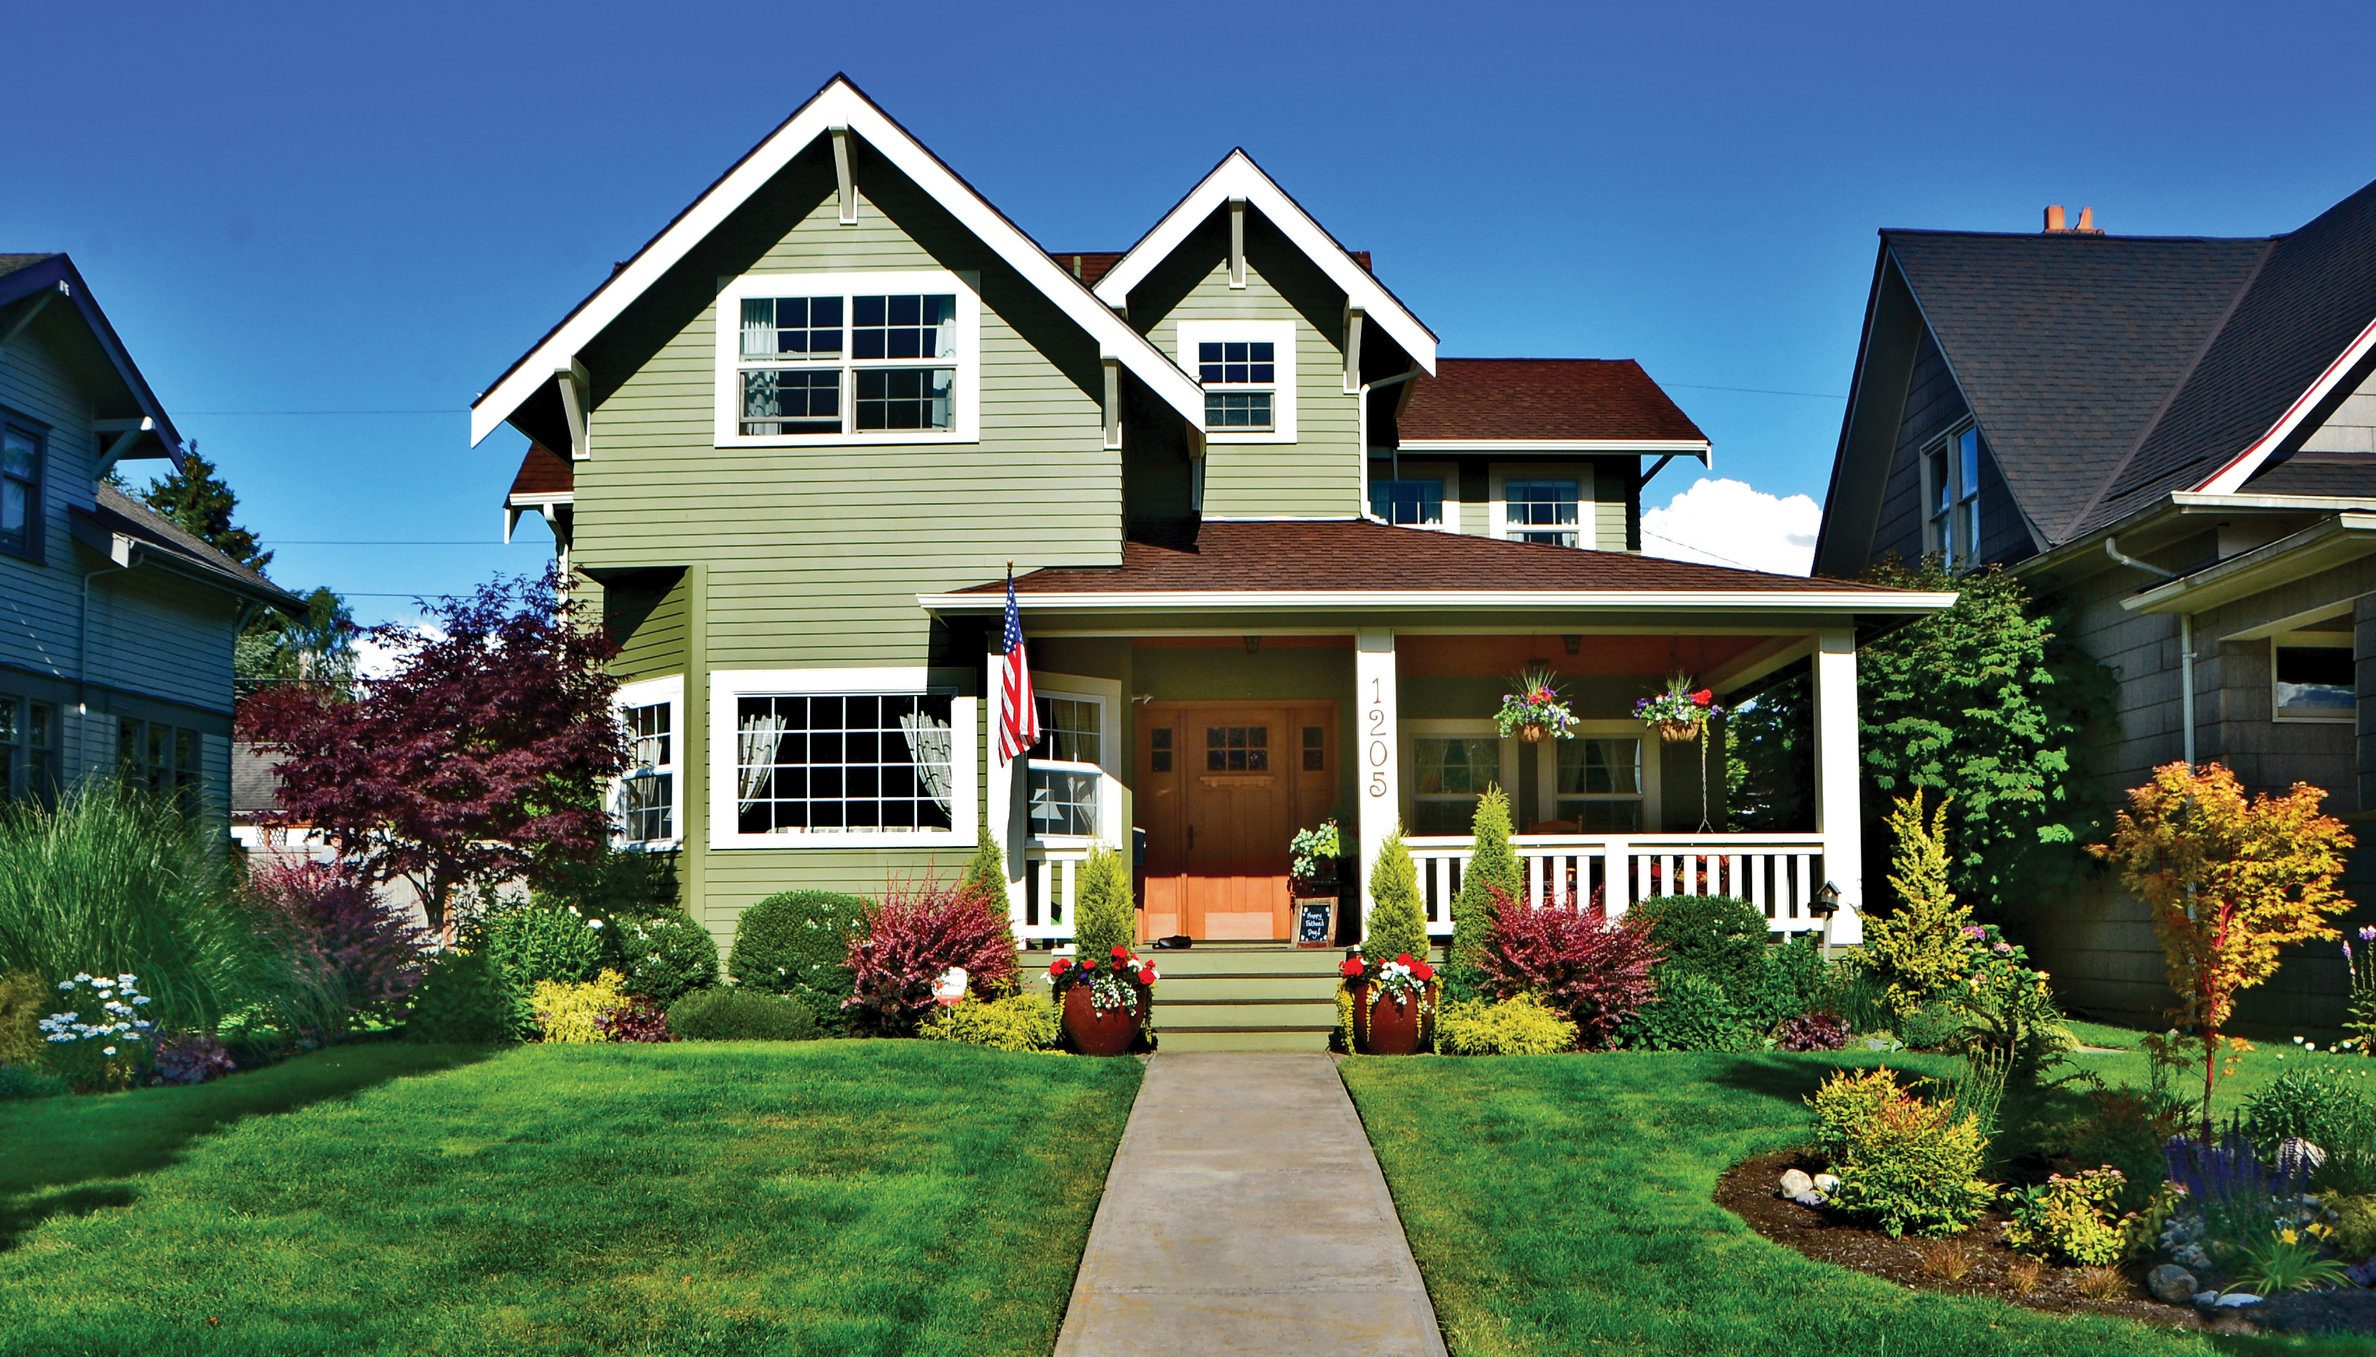 Best seattle suburbs for affordable homes seattle magazine for The affordable house